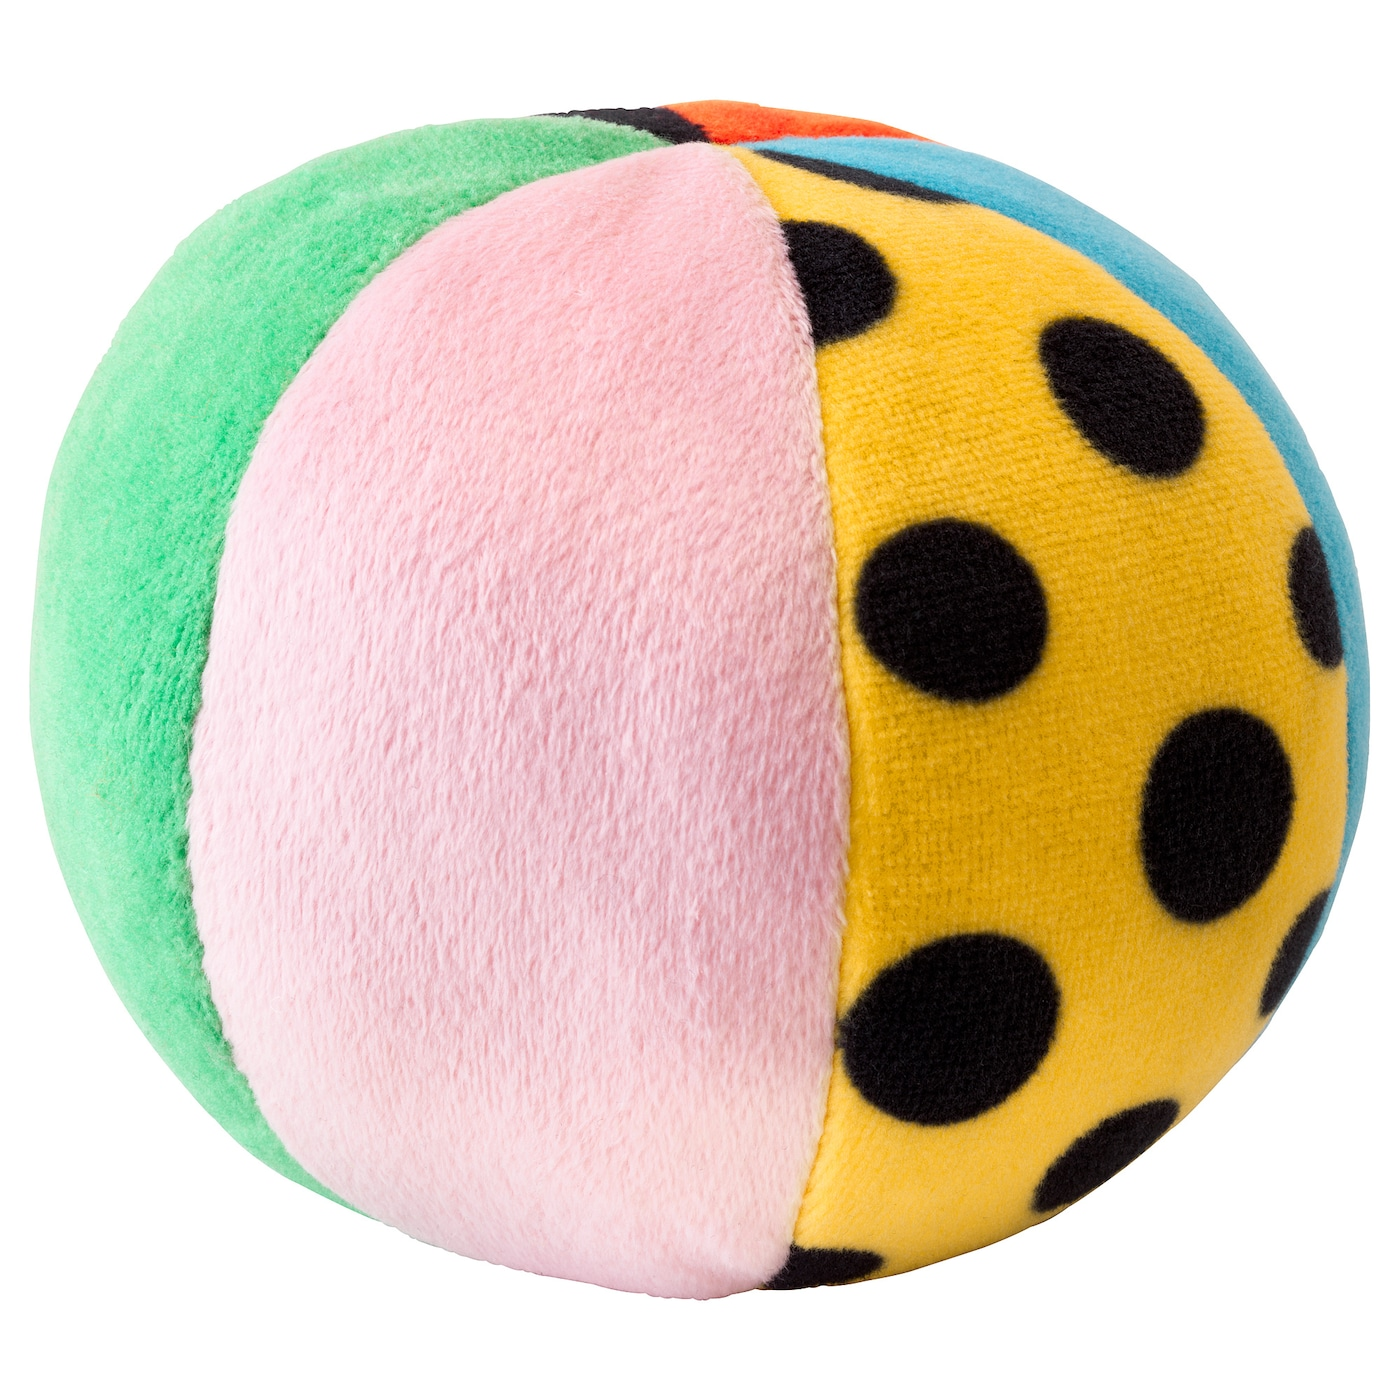 IKEA KLAPPA soft toy, ball Easy to grasp with small hands.